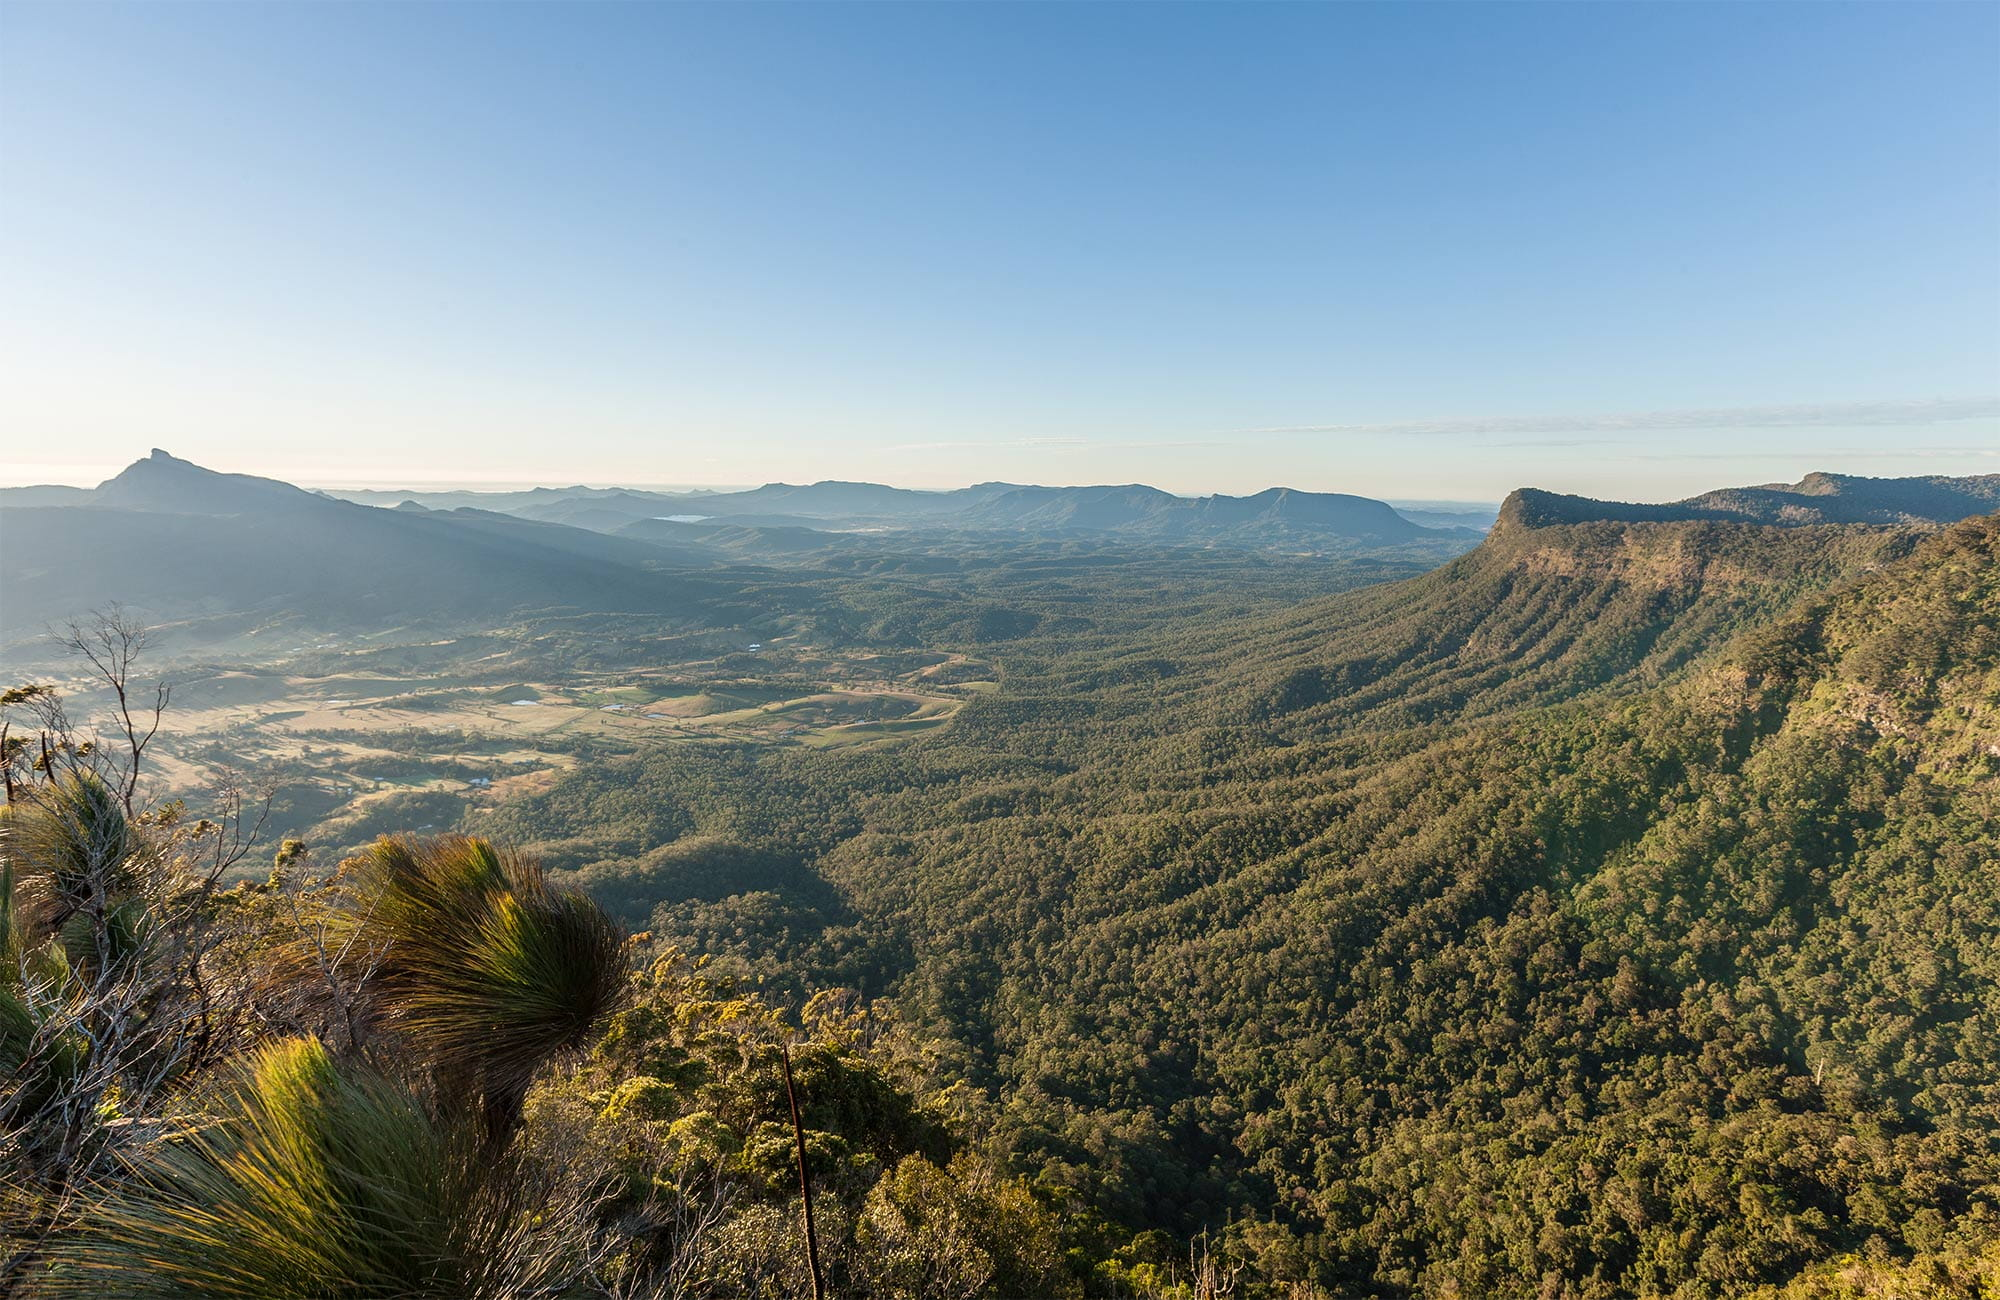 View of Mount Warning, Border Ranges National Park. Photo: John Spencer